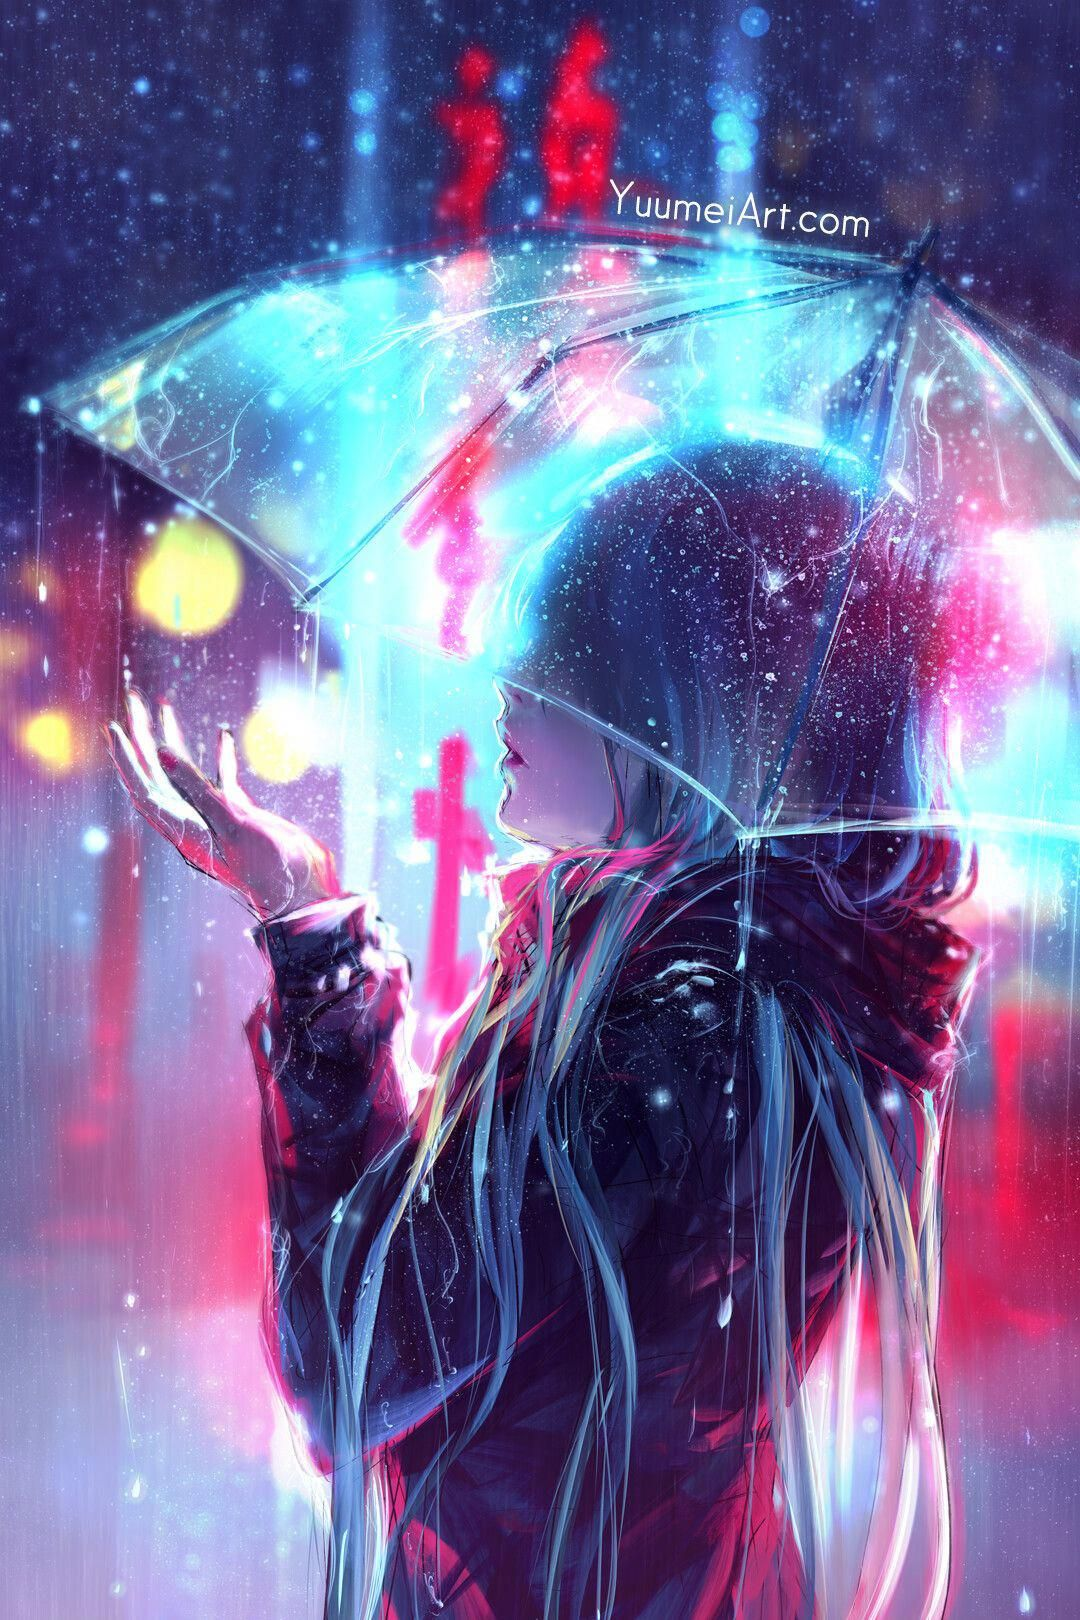 Blurred Lines By Yuumei Wenqing Yanfinally Got Some Time To Draw Between Preparing For Anime Exp Anime Art Girl Cool Anime Wallpapers Anime Scenery Wallpaper